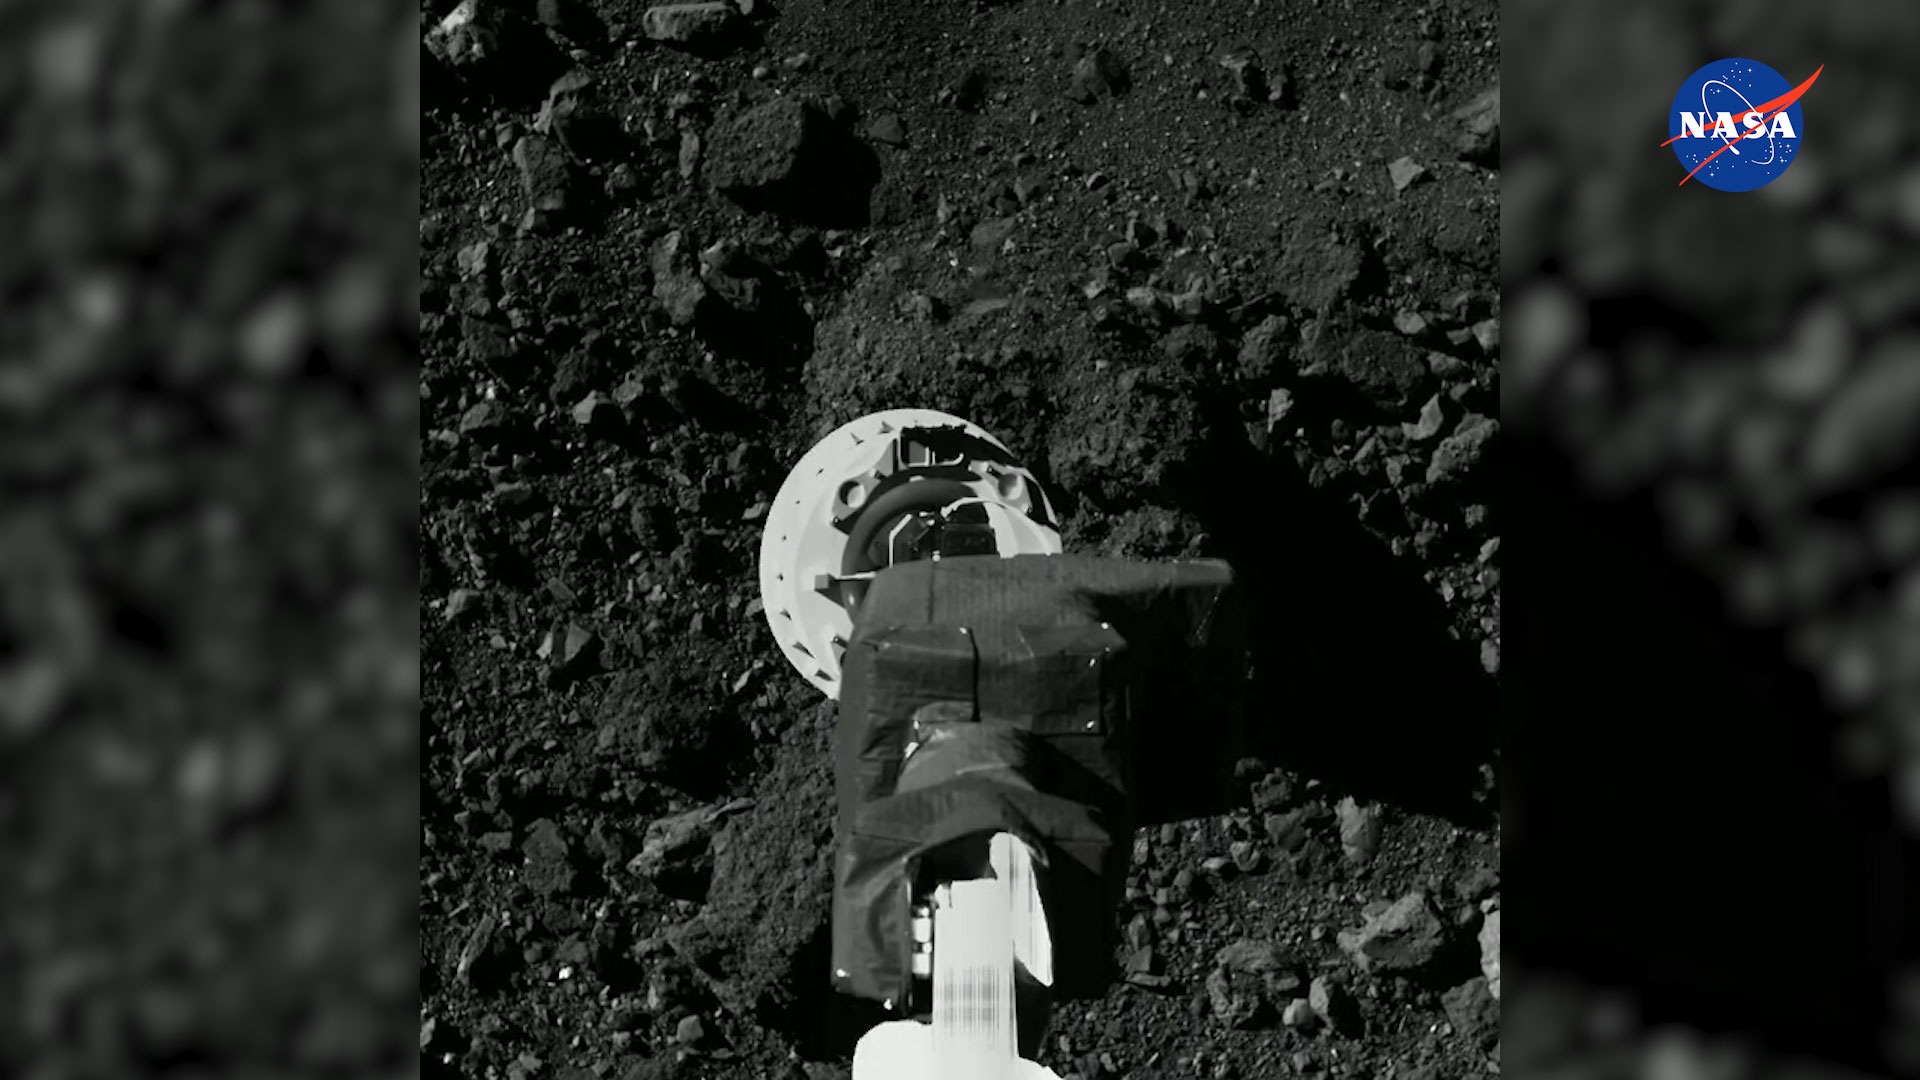 The OSIRIS-REx spacecraft hovers above the asteroid Bennu during a rehearsal on August 11, 2020, months ahead of a planned mission to collect a sample of the asteroid from its surface.